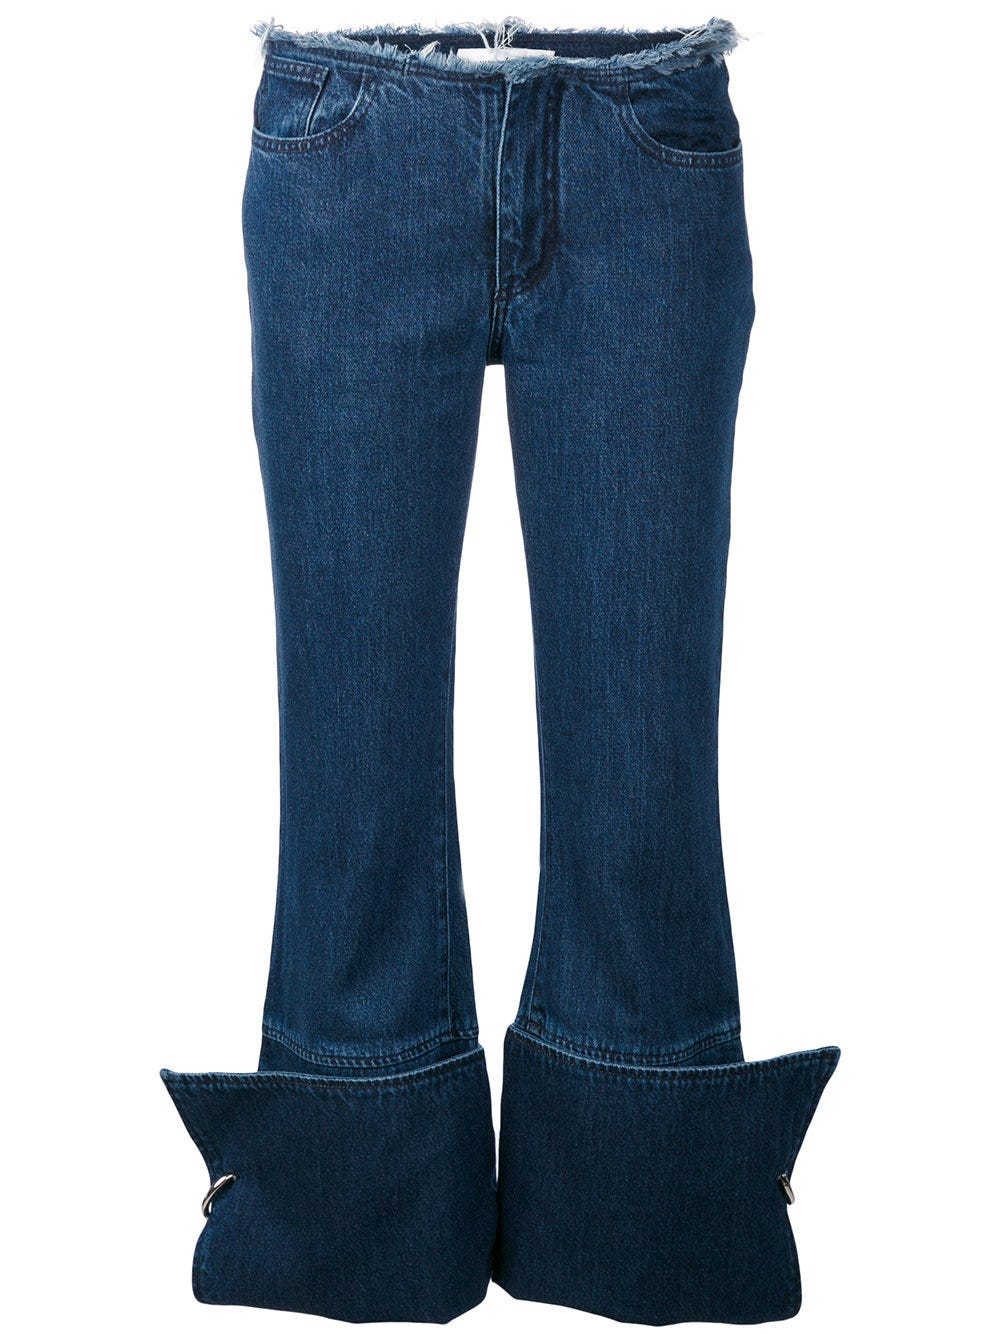 turnover denim jeans - Blue Marques Almeida